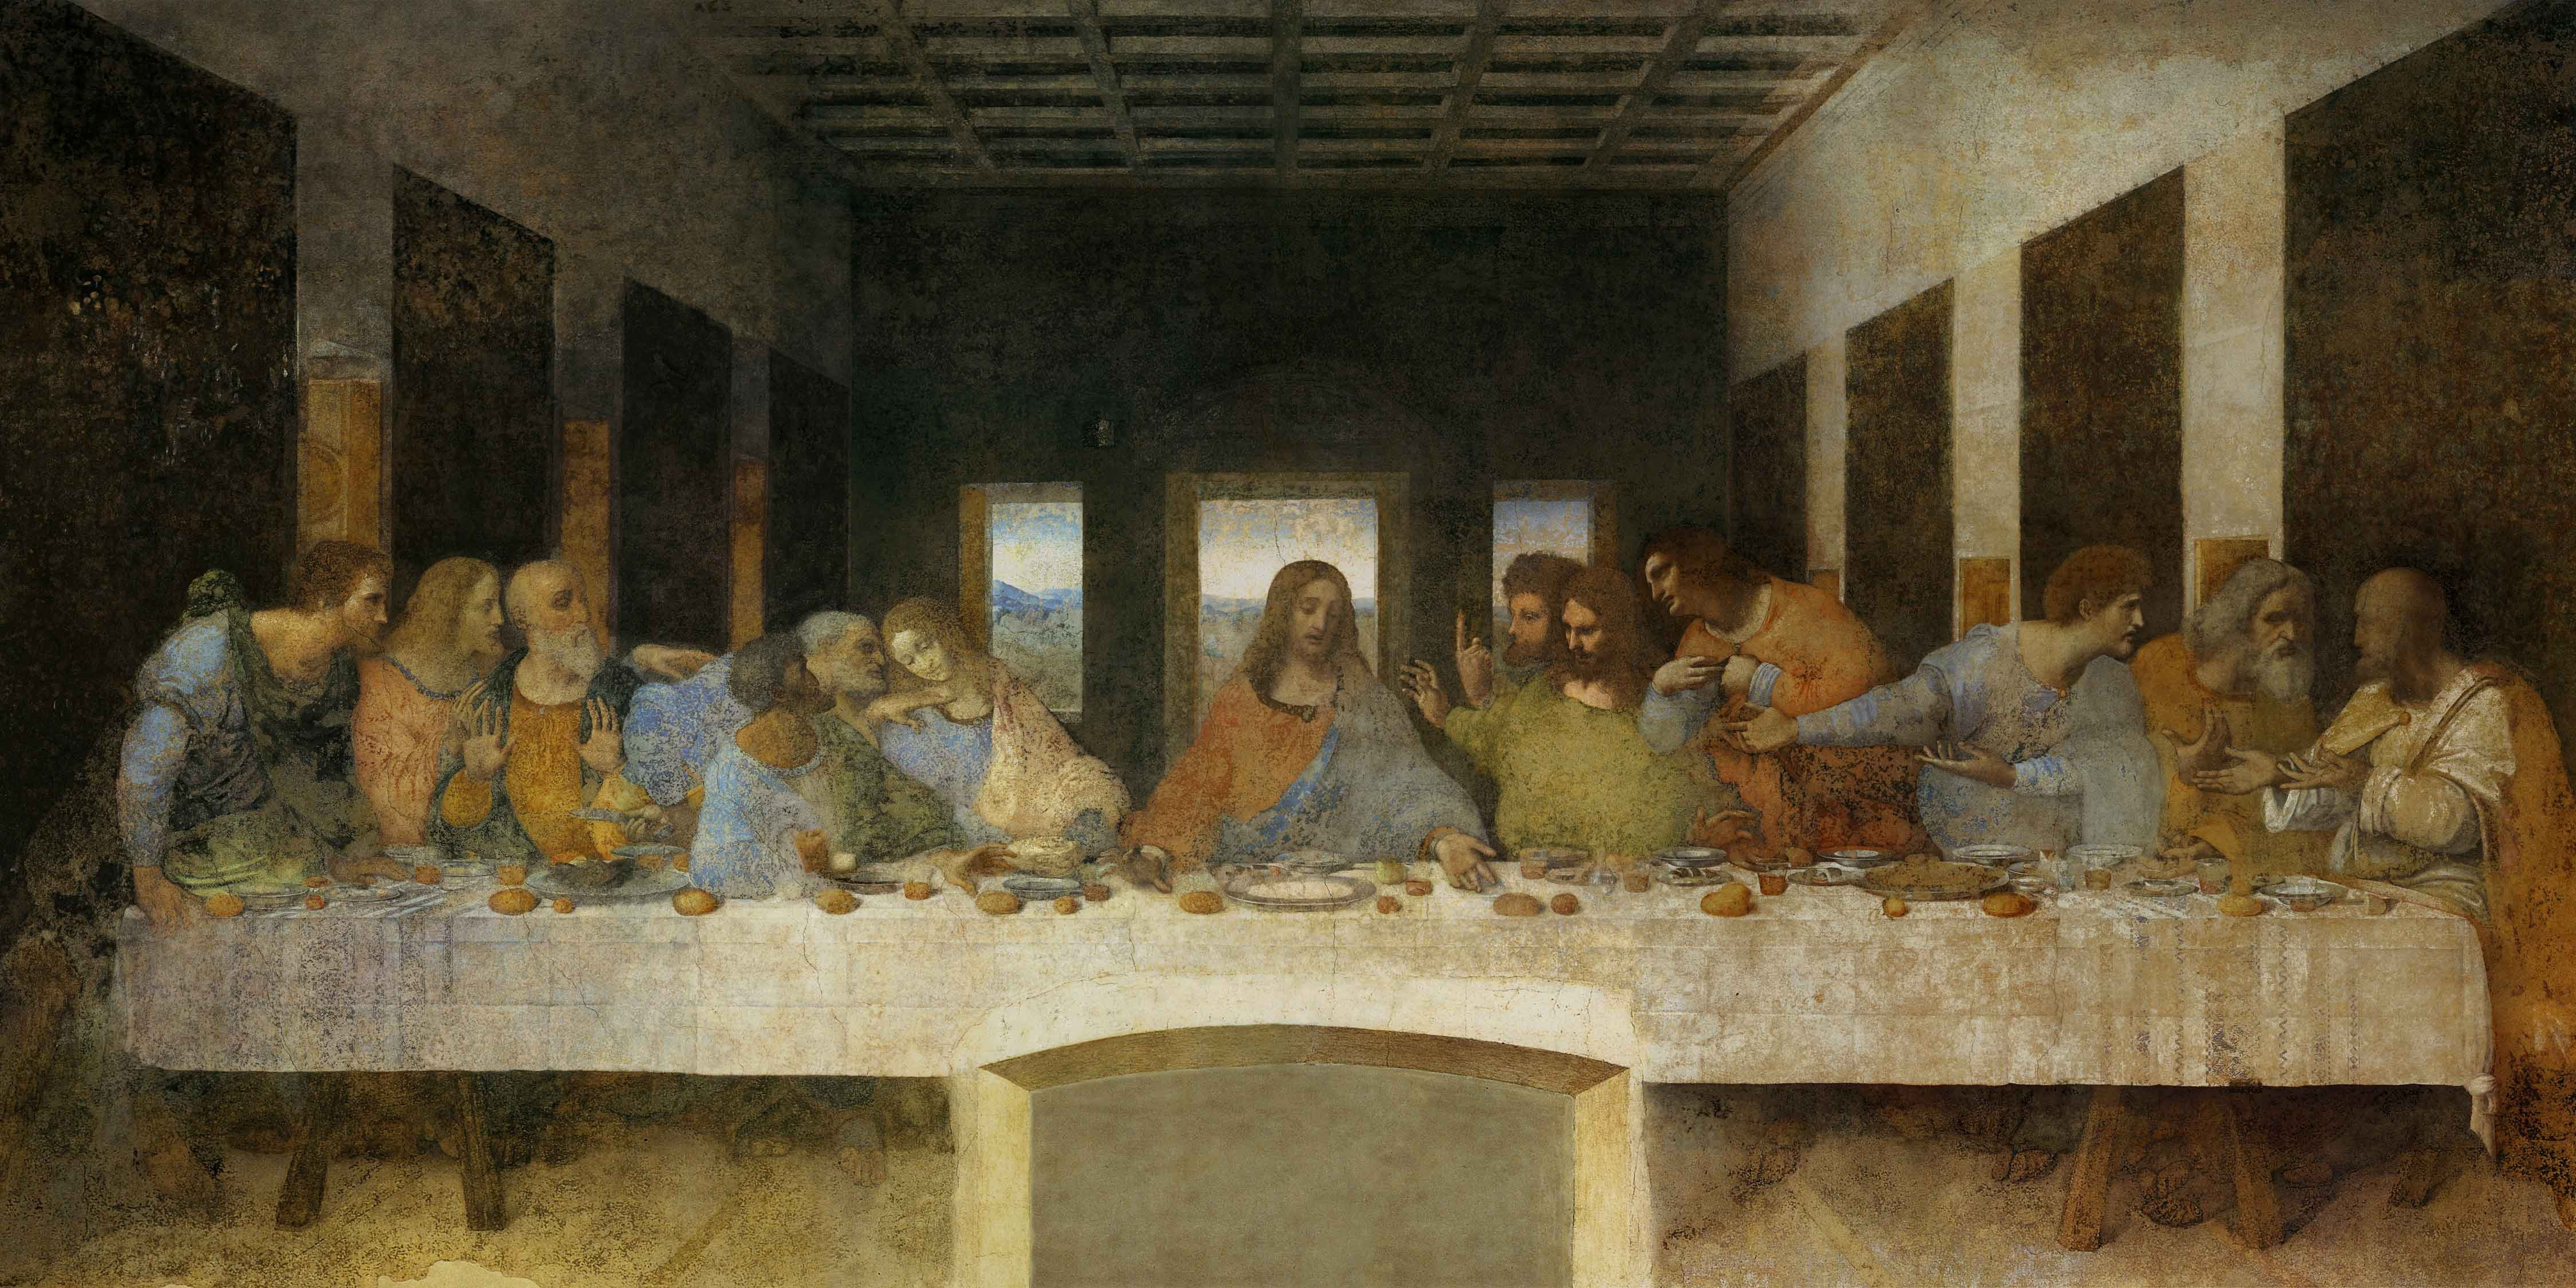 file:thelastsupper - wikimedia commons